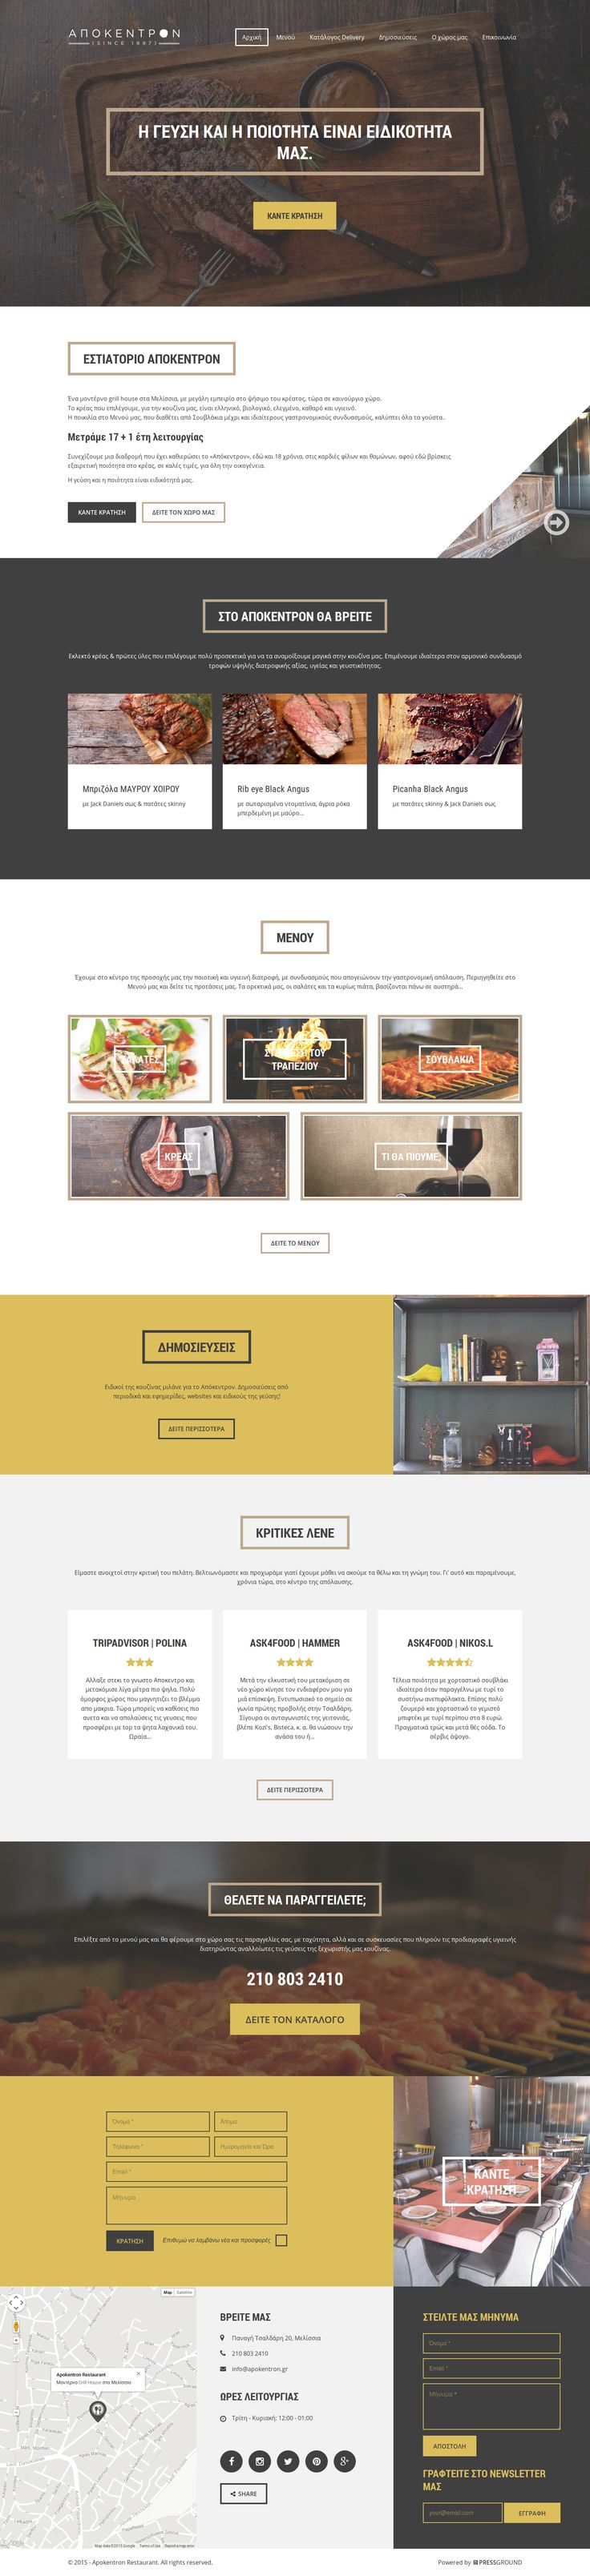 Apokentron is a new age Grill House in Athens, Greece, with a history that counts more than 17 years. The Hardpixel Team designed and developed its new responsive website.